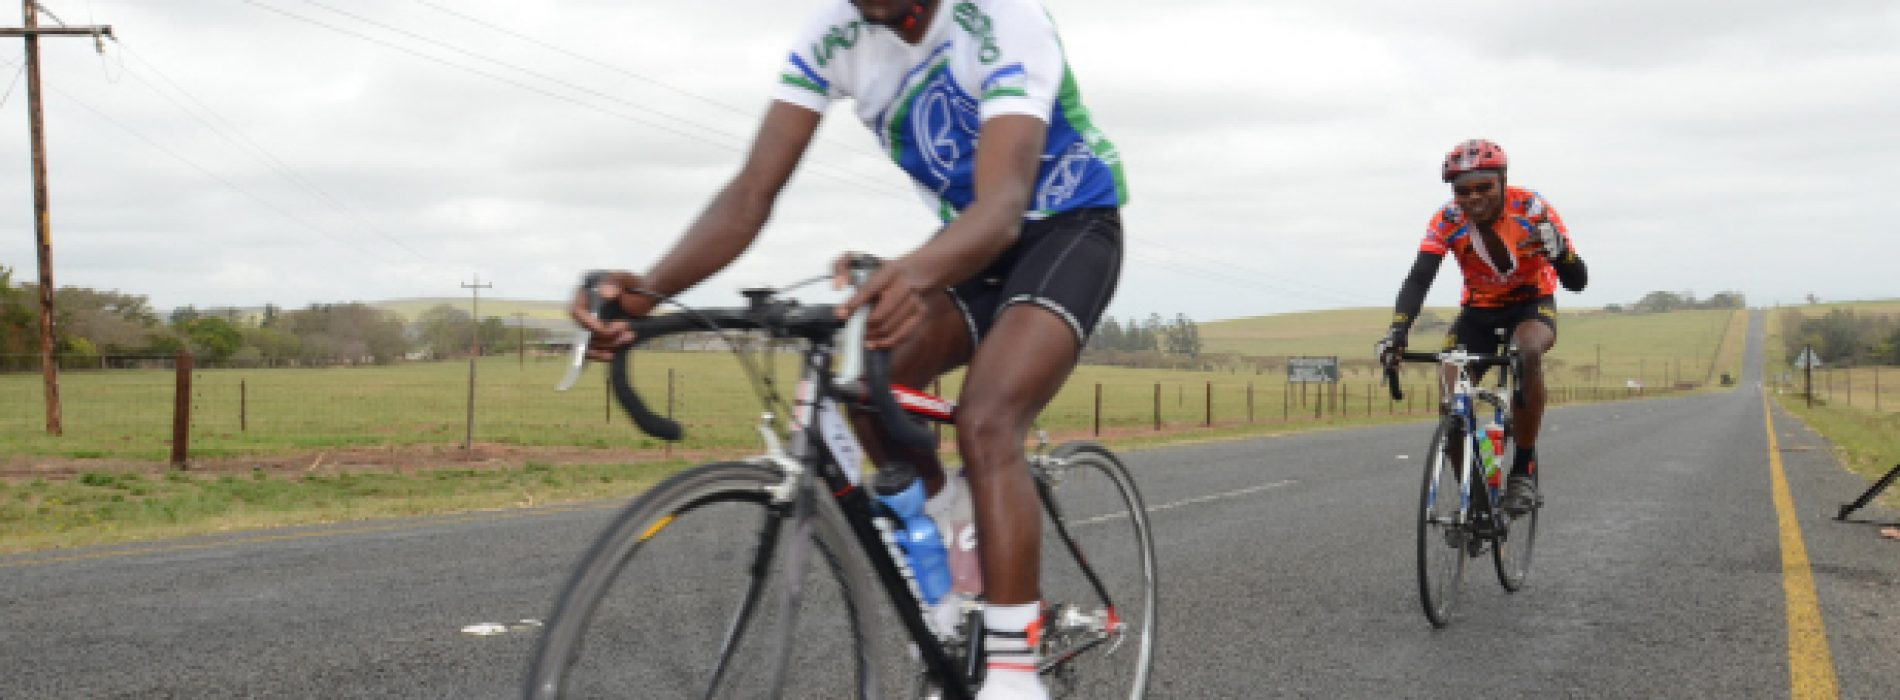 Cycling body struggles to raise funds